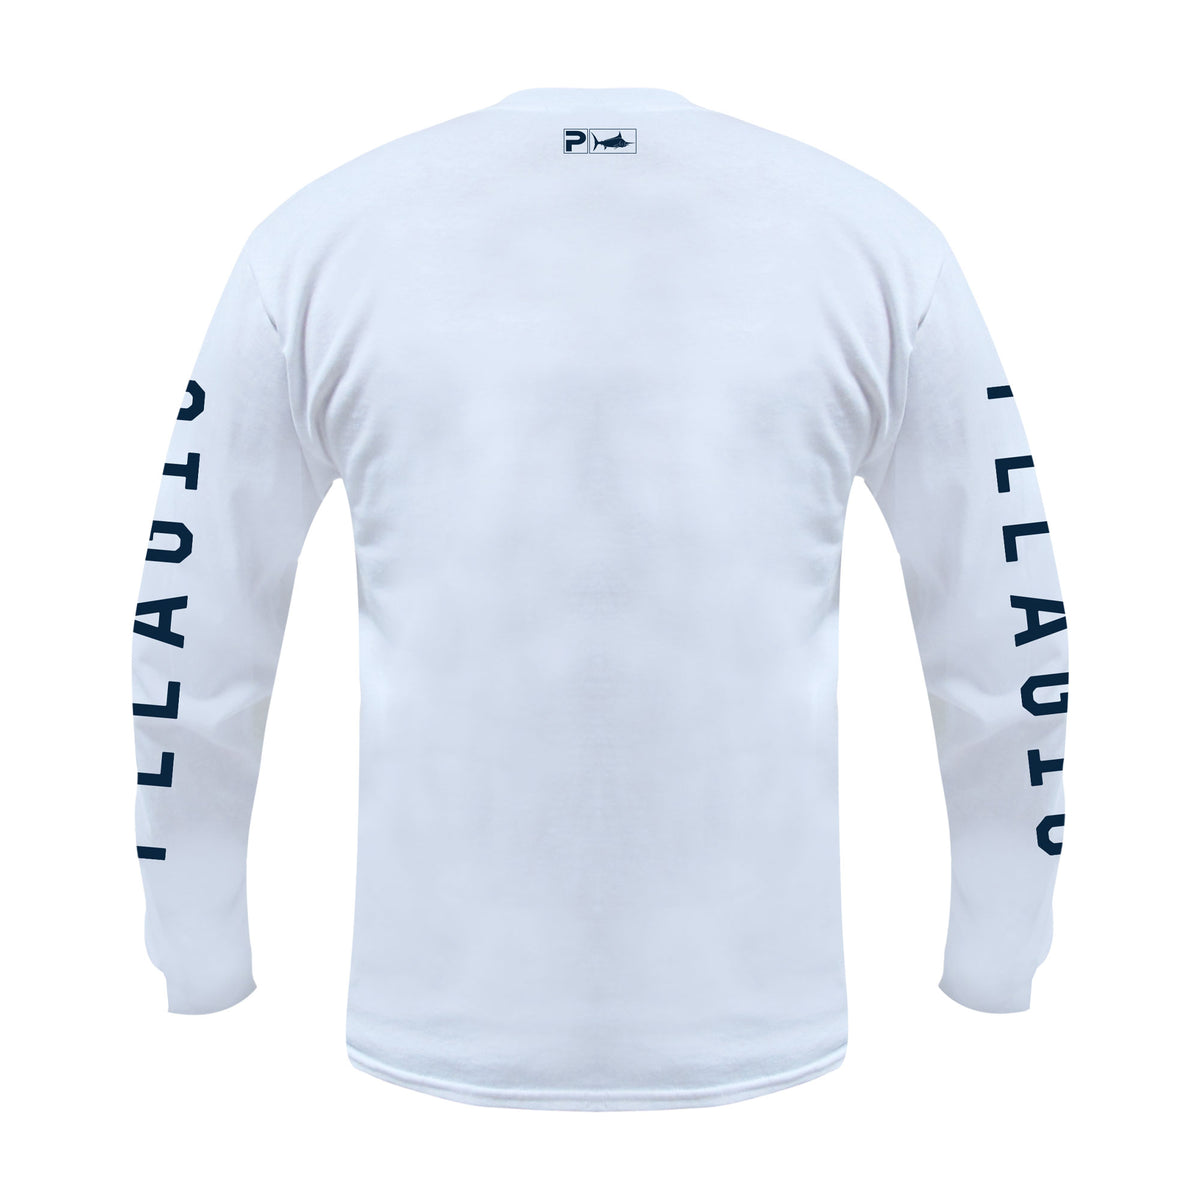 Underway Long Sleeve Fishing T-shirt Big Image - 2